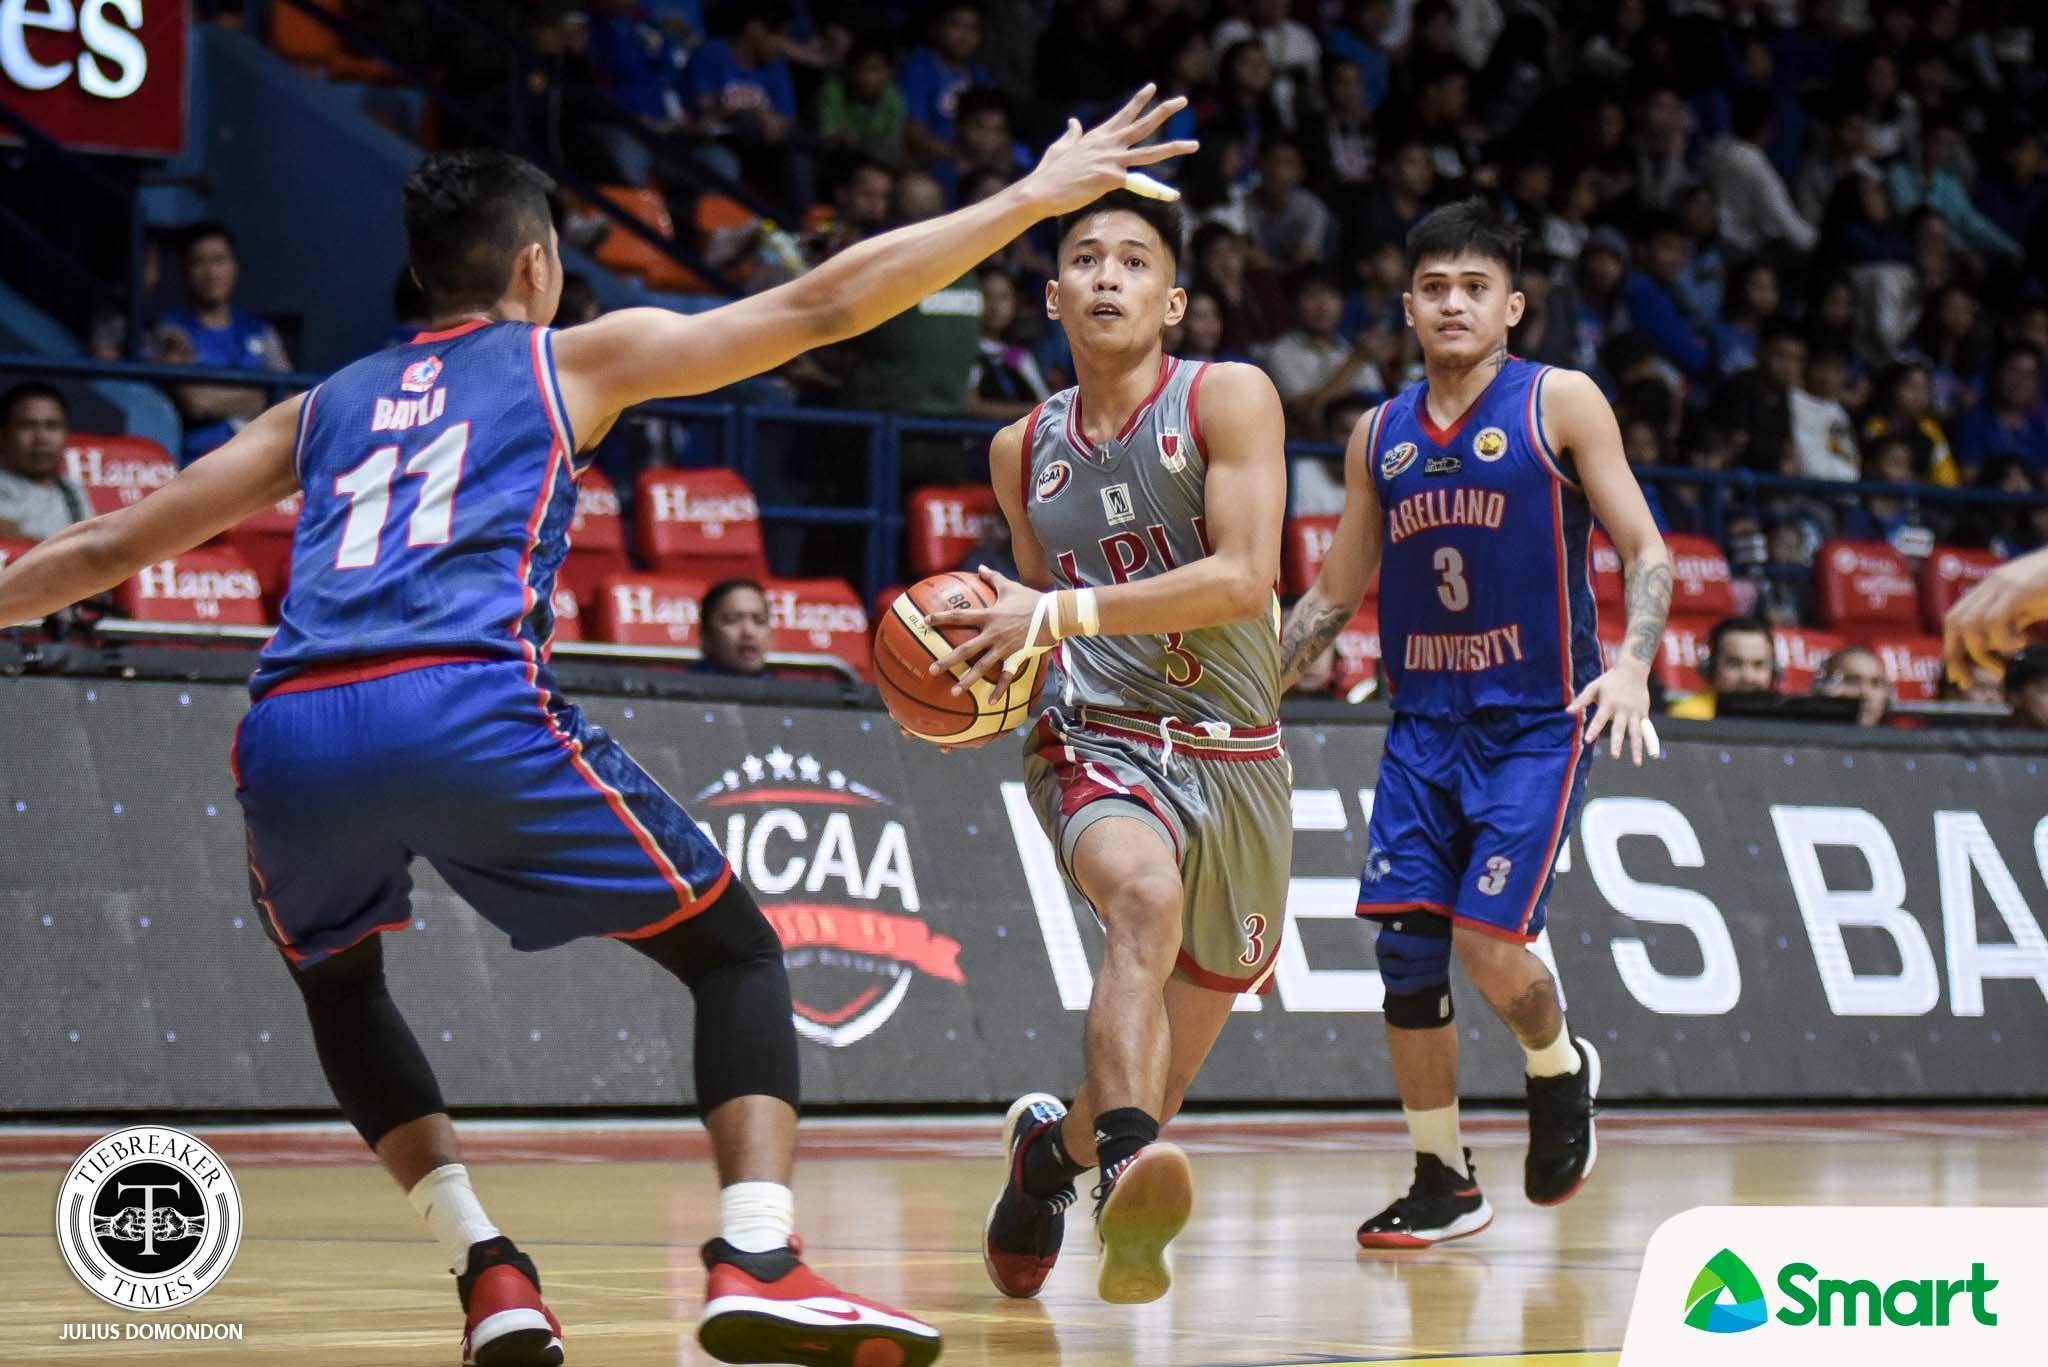 Tiebreaker Times Marcelino, Lyceum get back at Arellano AU Basketball LPU NCAA News  Topex Robinson NCAA Season 95 Seniors Basketball NCAA Season 95 Mike Nzeusseu Lyceum Seniors Basketball Jaycee Marcelino Arellano Seniors Basketball